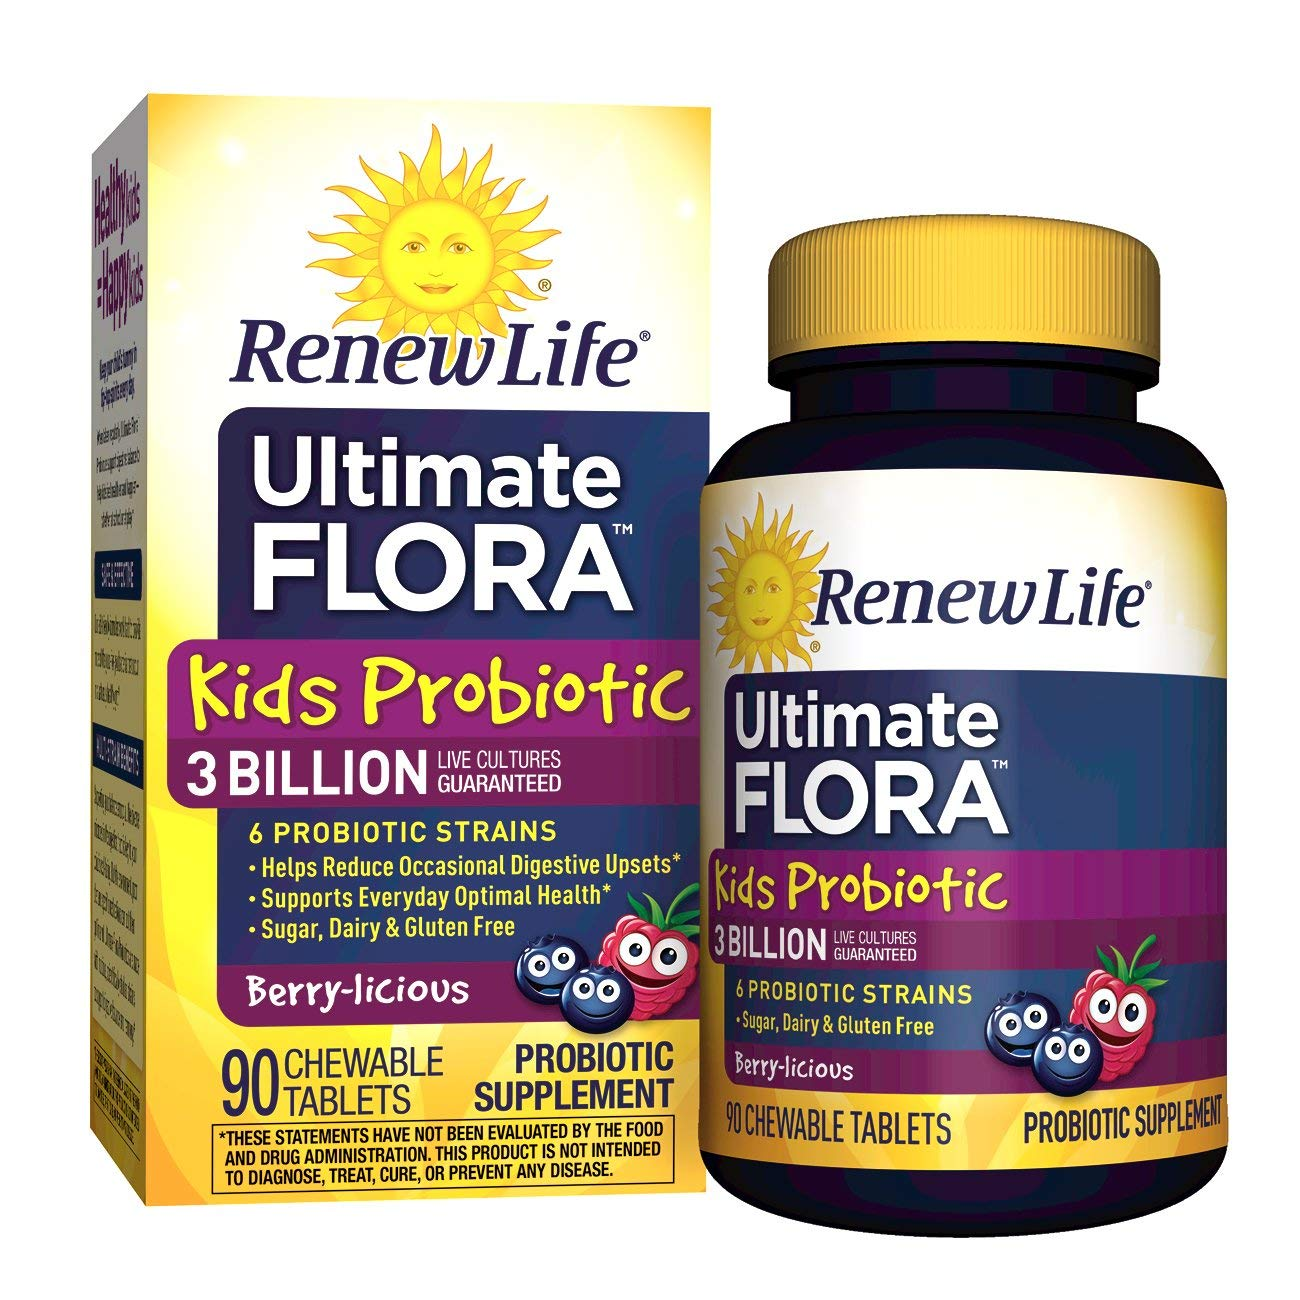 Renew Life Kids Probiotic - Ultimate Flora Kids Probiotic Supplement - Gluten, Dairy & Soy Free - 3 Billion CFU - Berry-licious, 90 Chewable Tablets by Renew Life